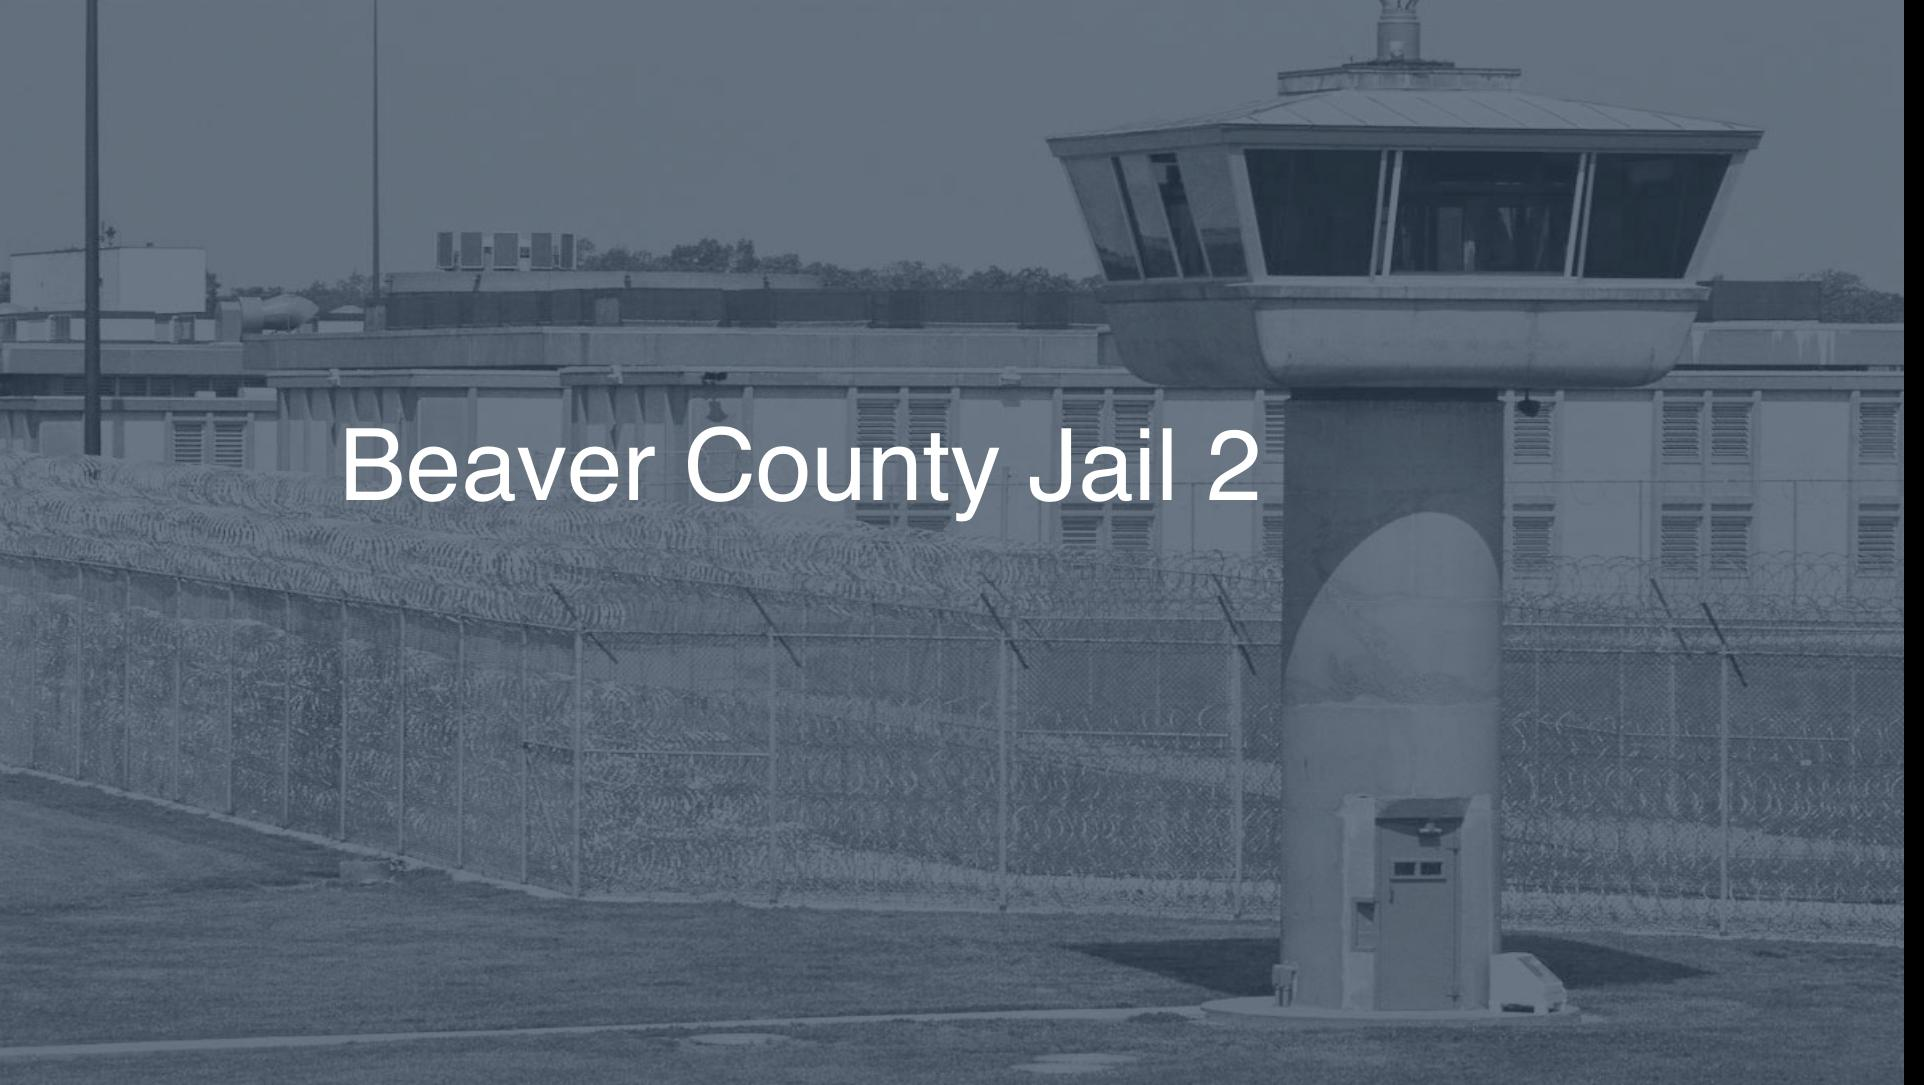 Beaver County Jail Inmate Search, Lookup & Services - Pigeonly